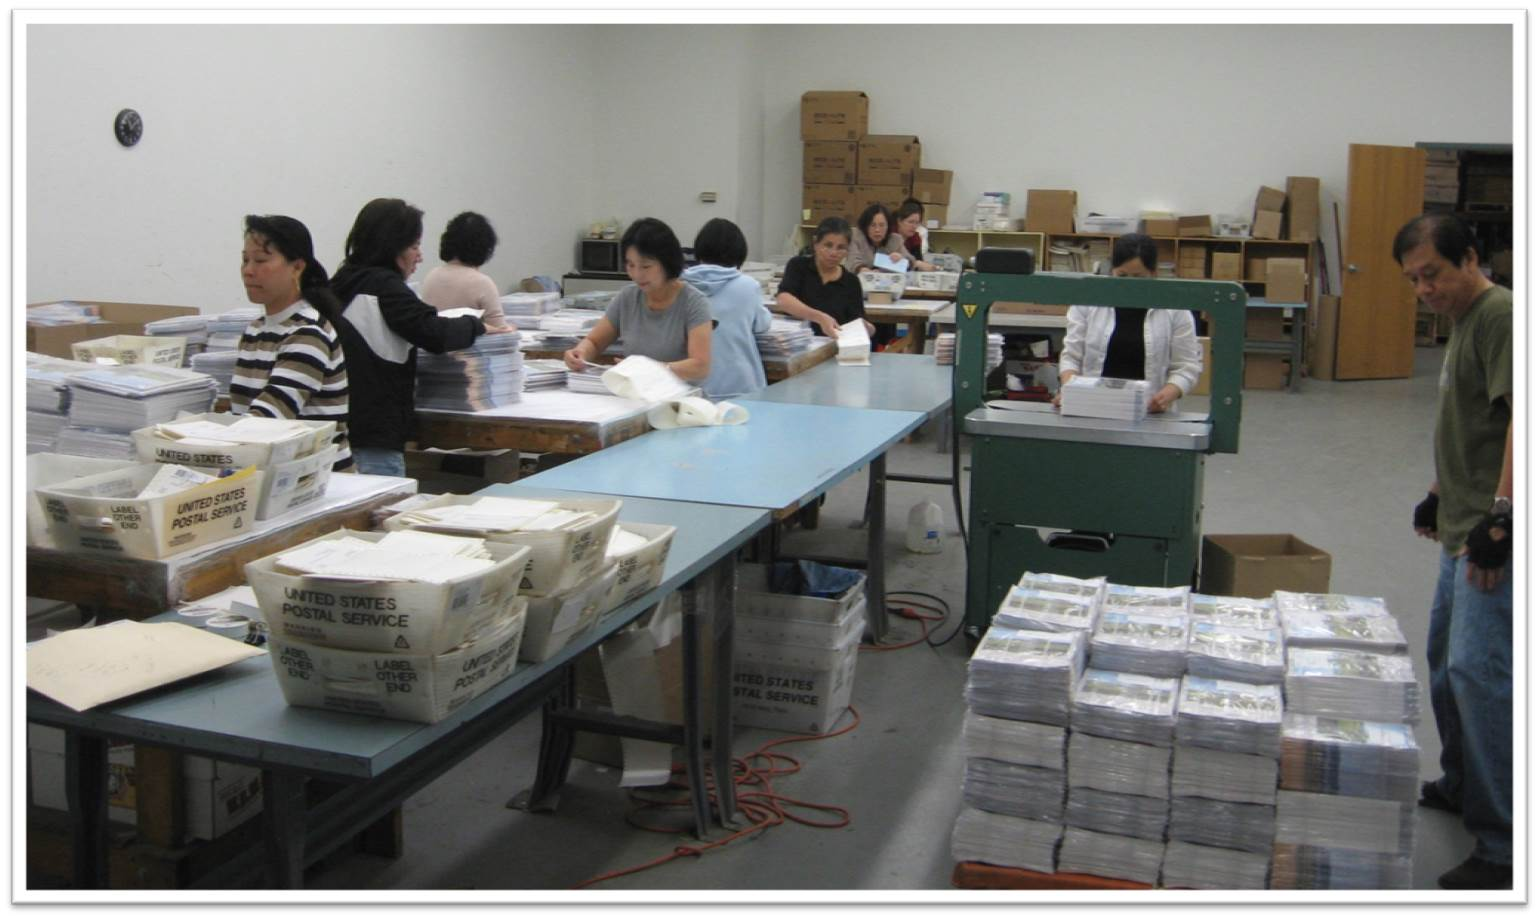 With state-of-the-art printing pressrooms and a full-service lettershop, we can handle every aspect of collateral production and assembly!